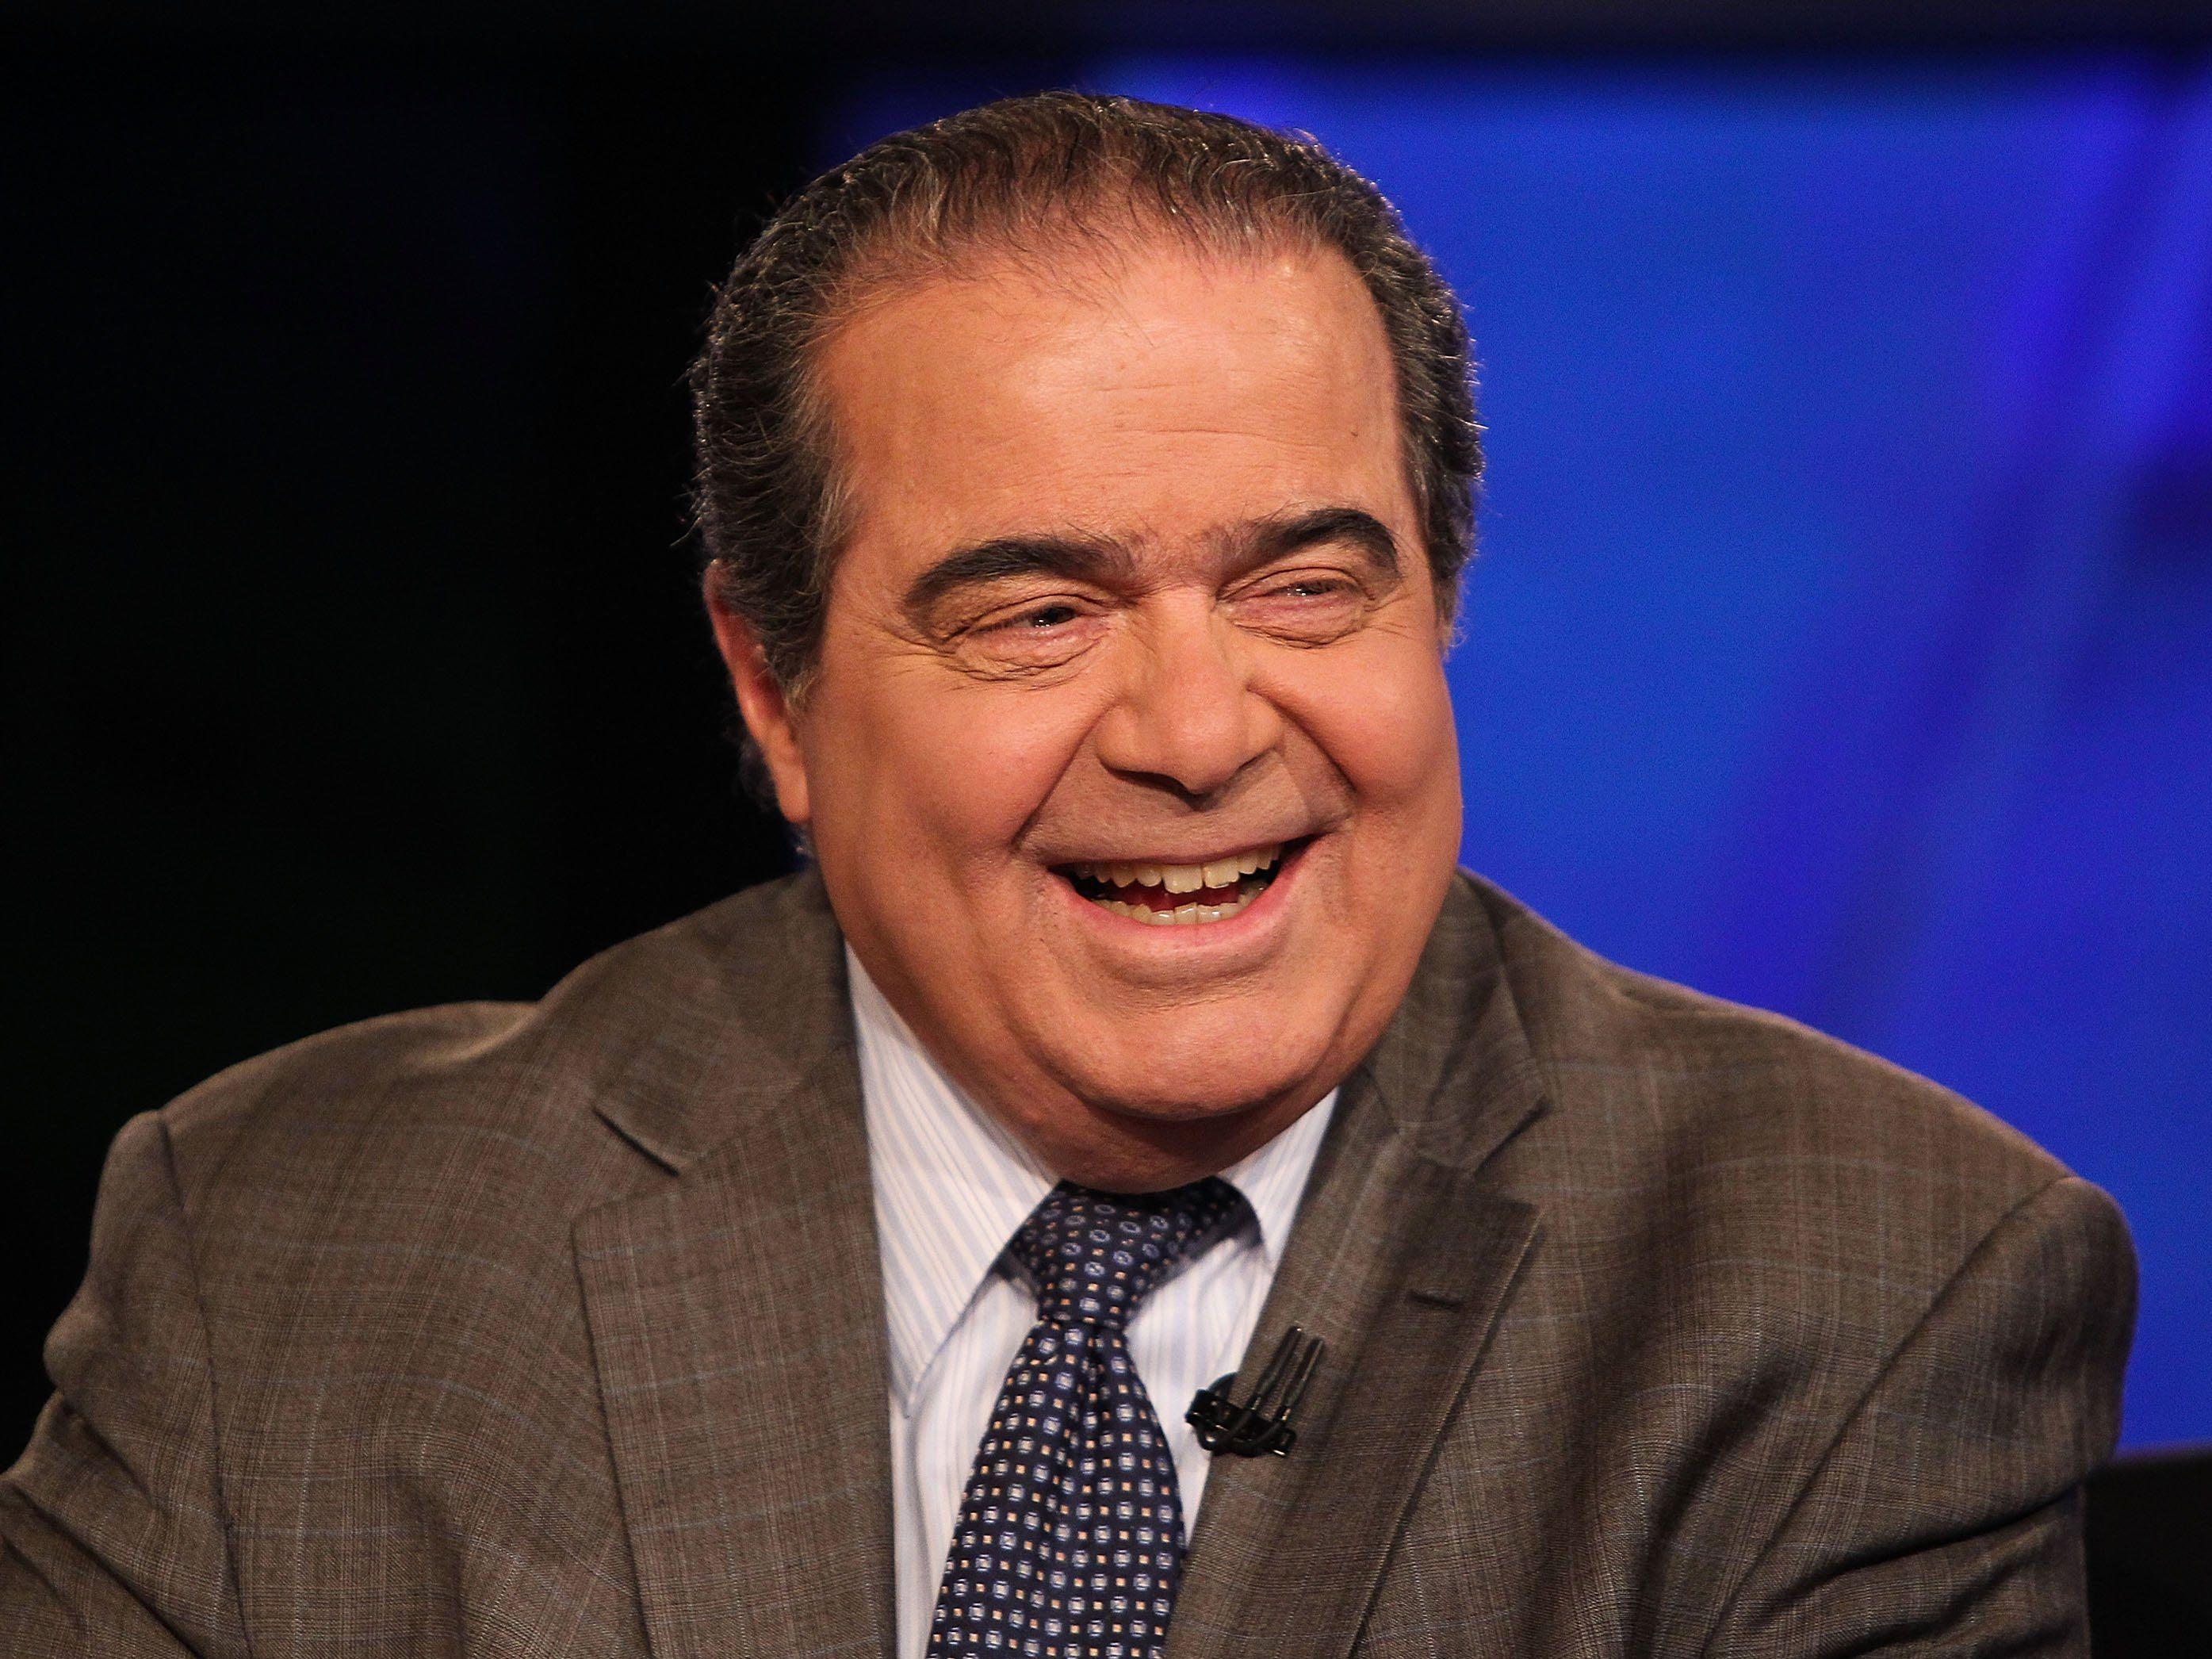 'Not an ogre:' A former clerk told us what it was really like to work with Justice Scalia